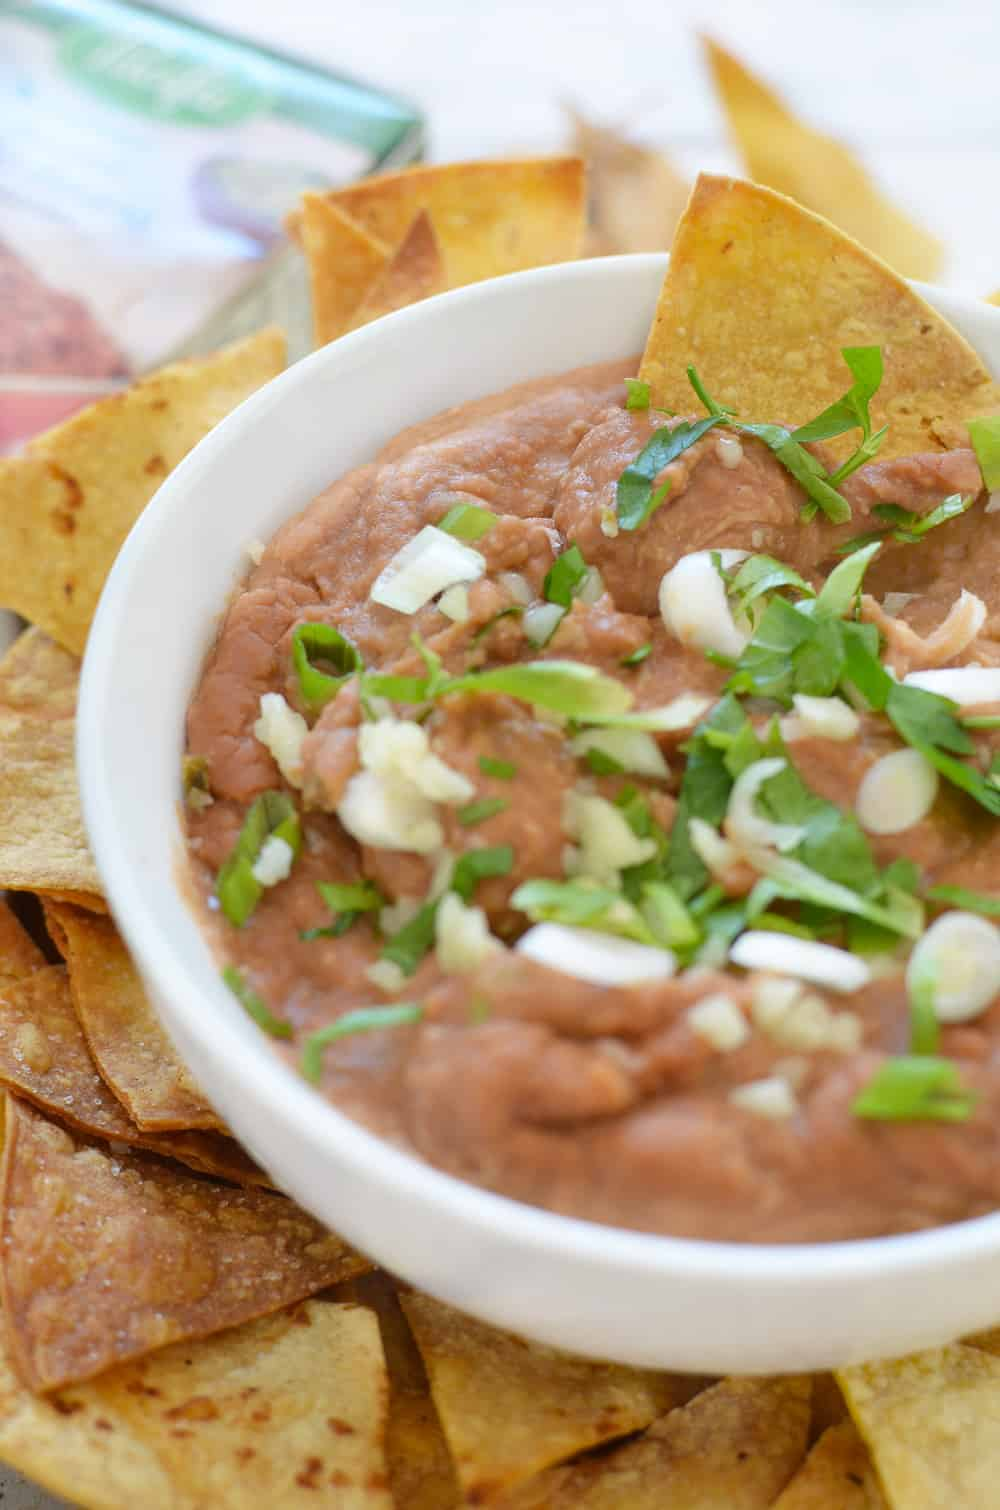 Homemade Tortilla Chips And Bean Dip Recipe — Dishmaps